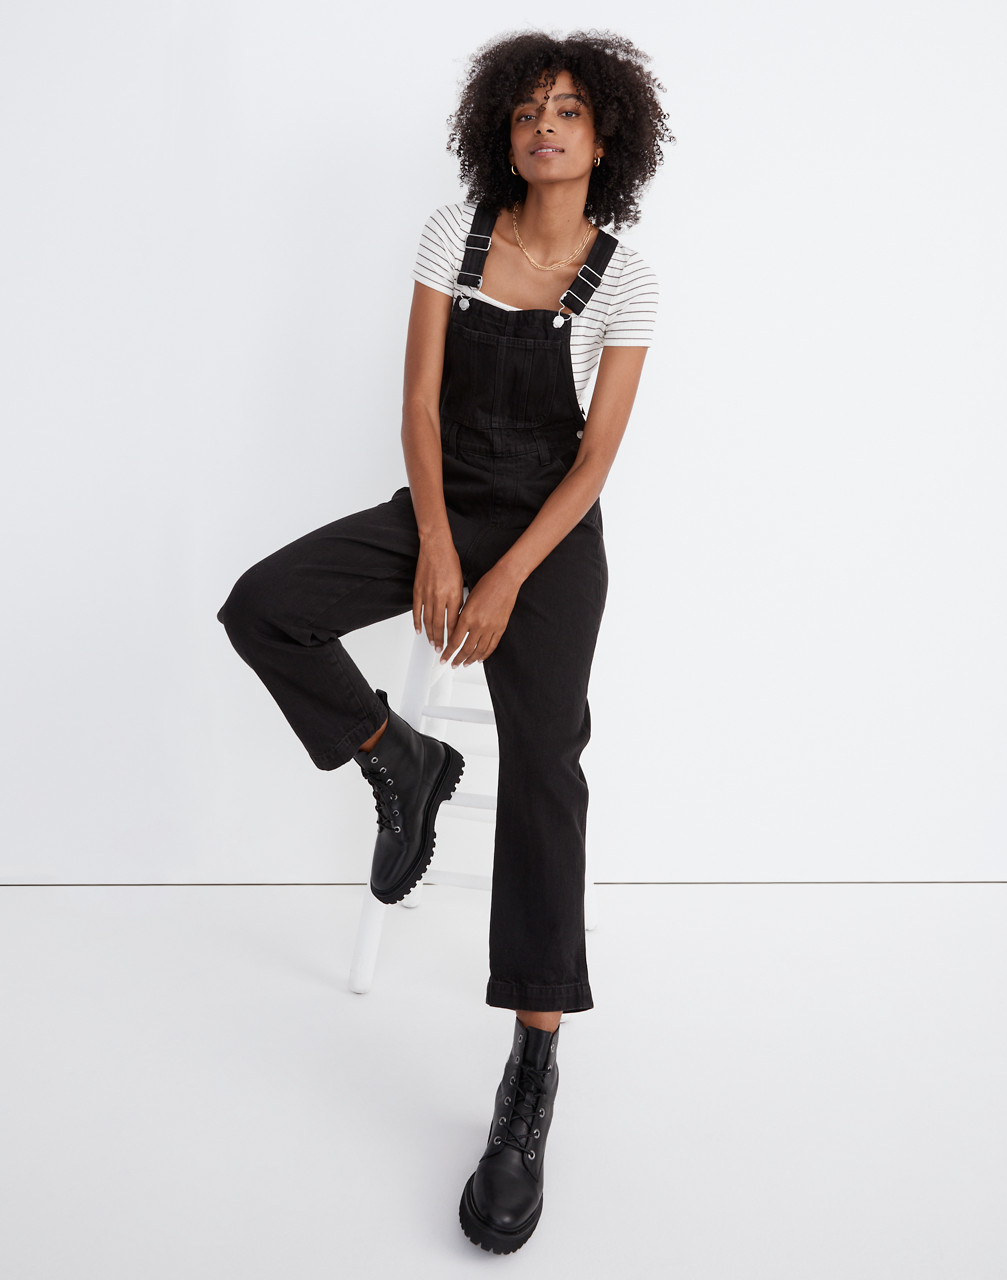 1980s Clothing, Fashion   80s Style Clothes Straight-Leg Overalls in Lunar Wash $148.00 AT vintagedancer.com